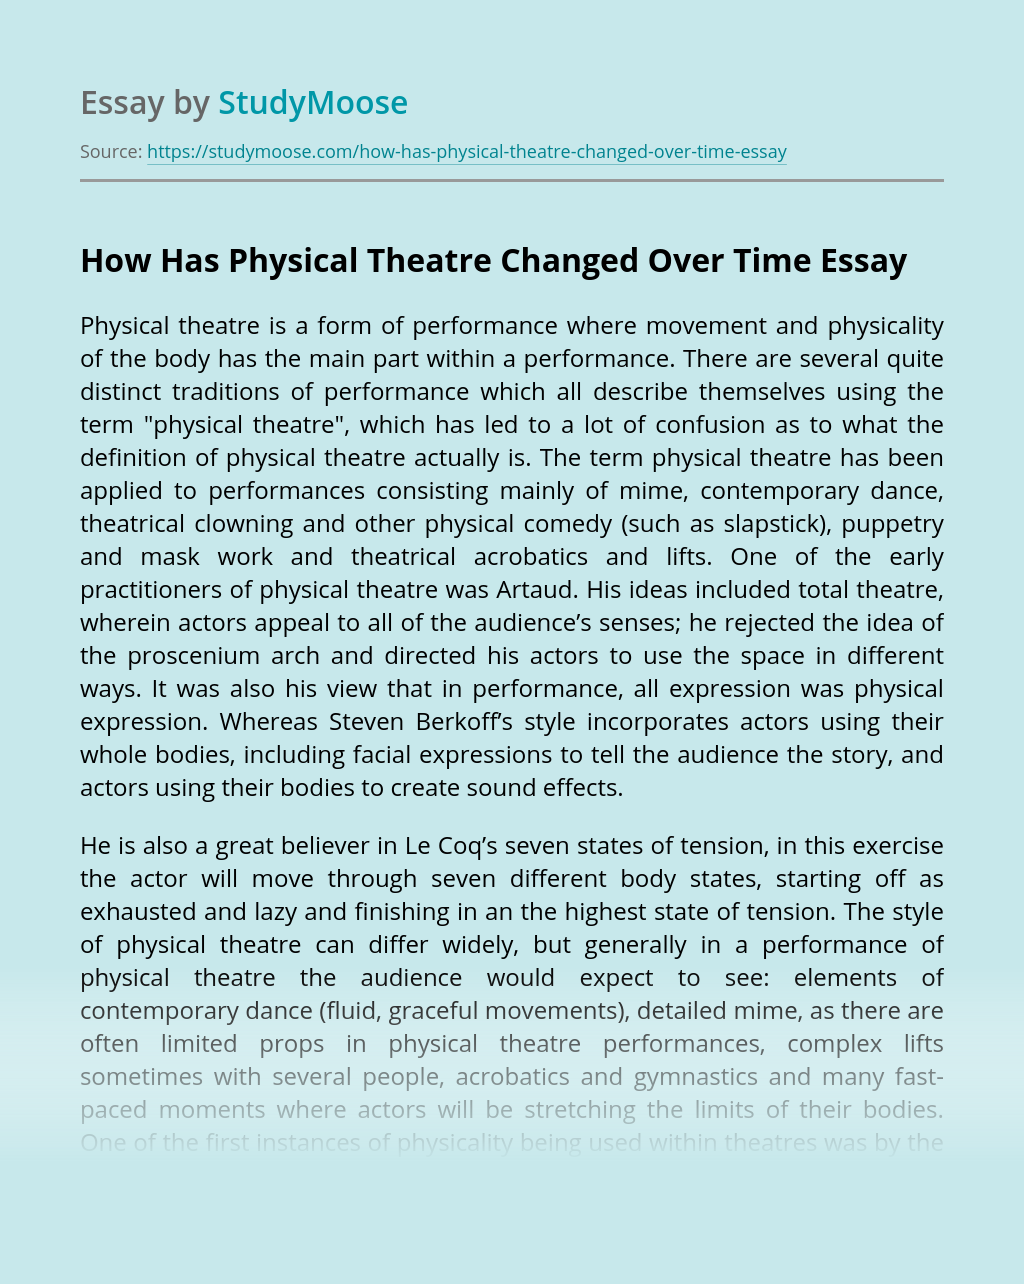 How Has Physical Theatre Changed Over Time